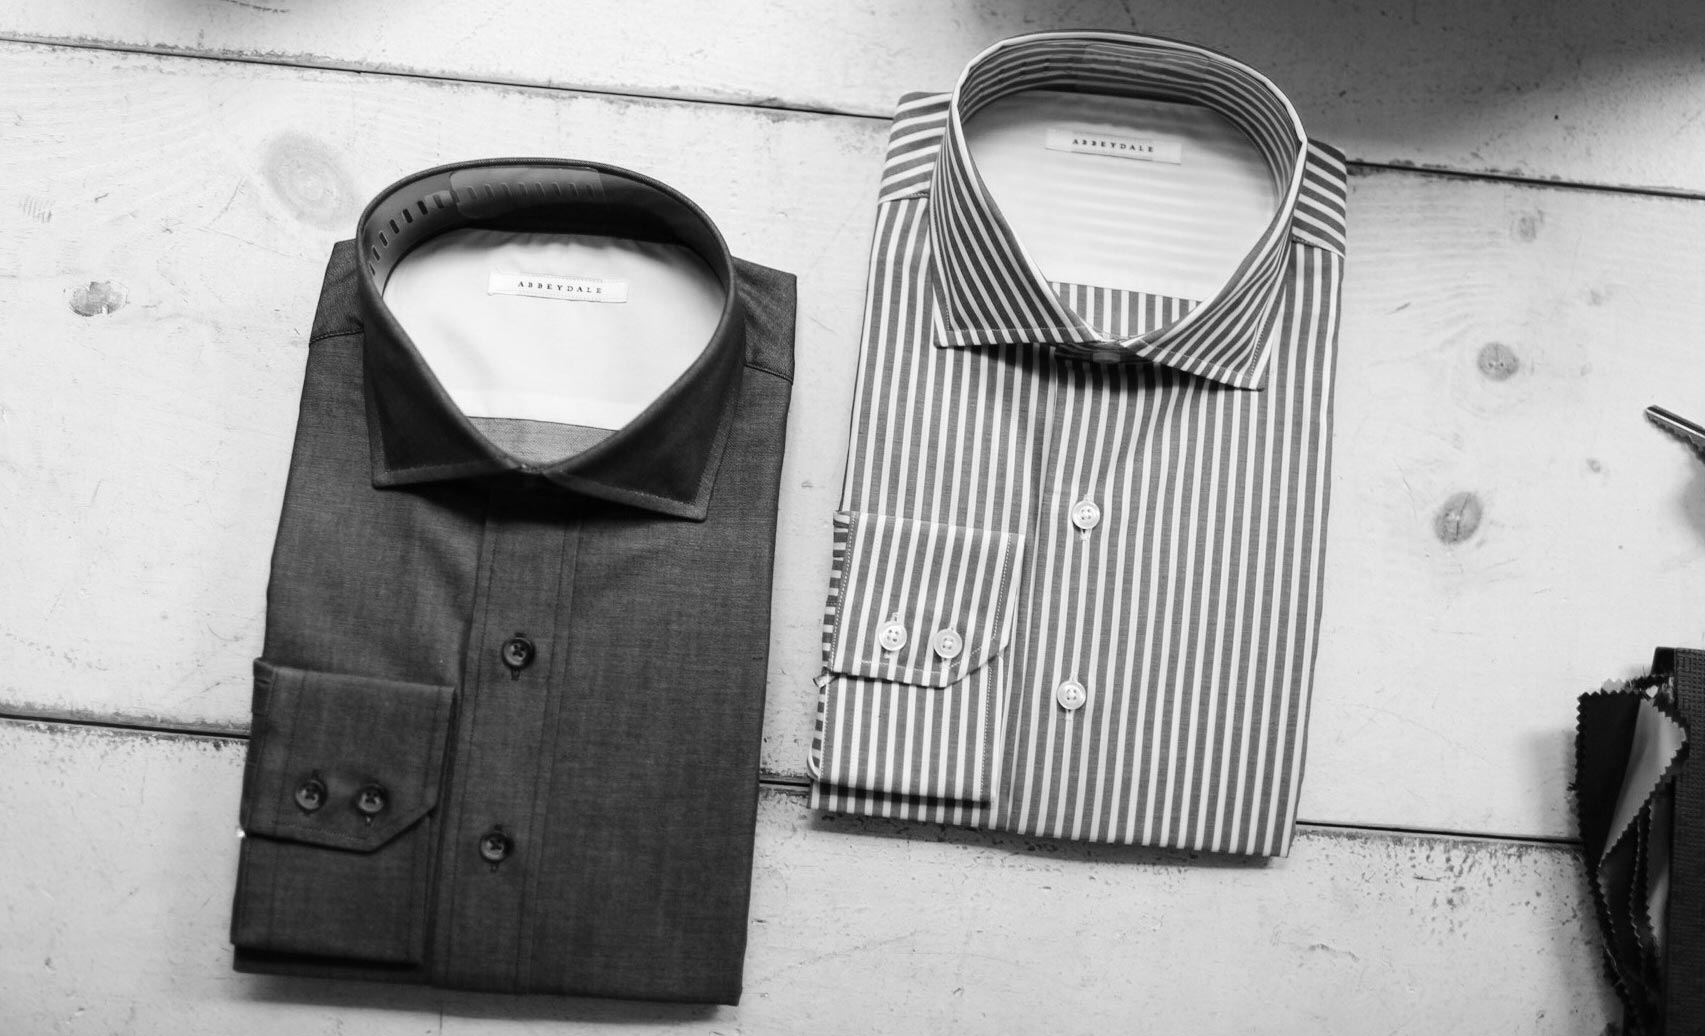 Shirting - Our shirts are made of soft, breathable and luxurious high weave cottons, and custom made for an ideal fit by artisan tailors. Each shirt is crafted to your measurements and finished with exacting attention to detail. Pricing starts at $195. Please allow 4 weeks for delivery.